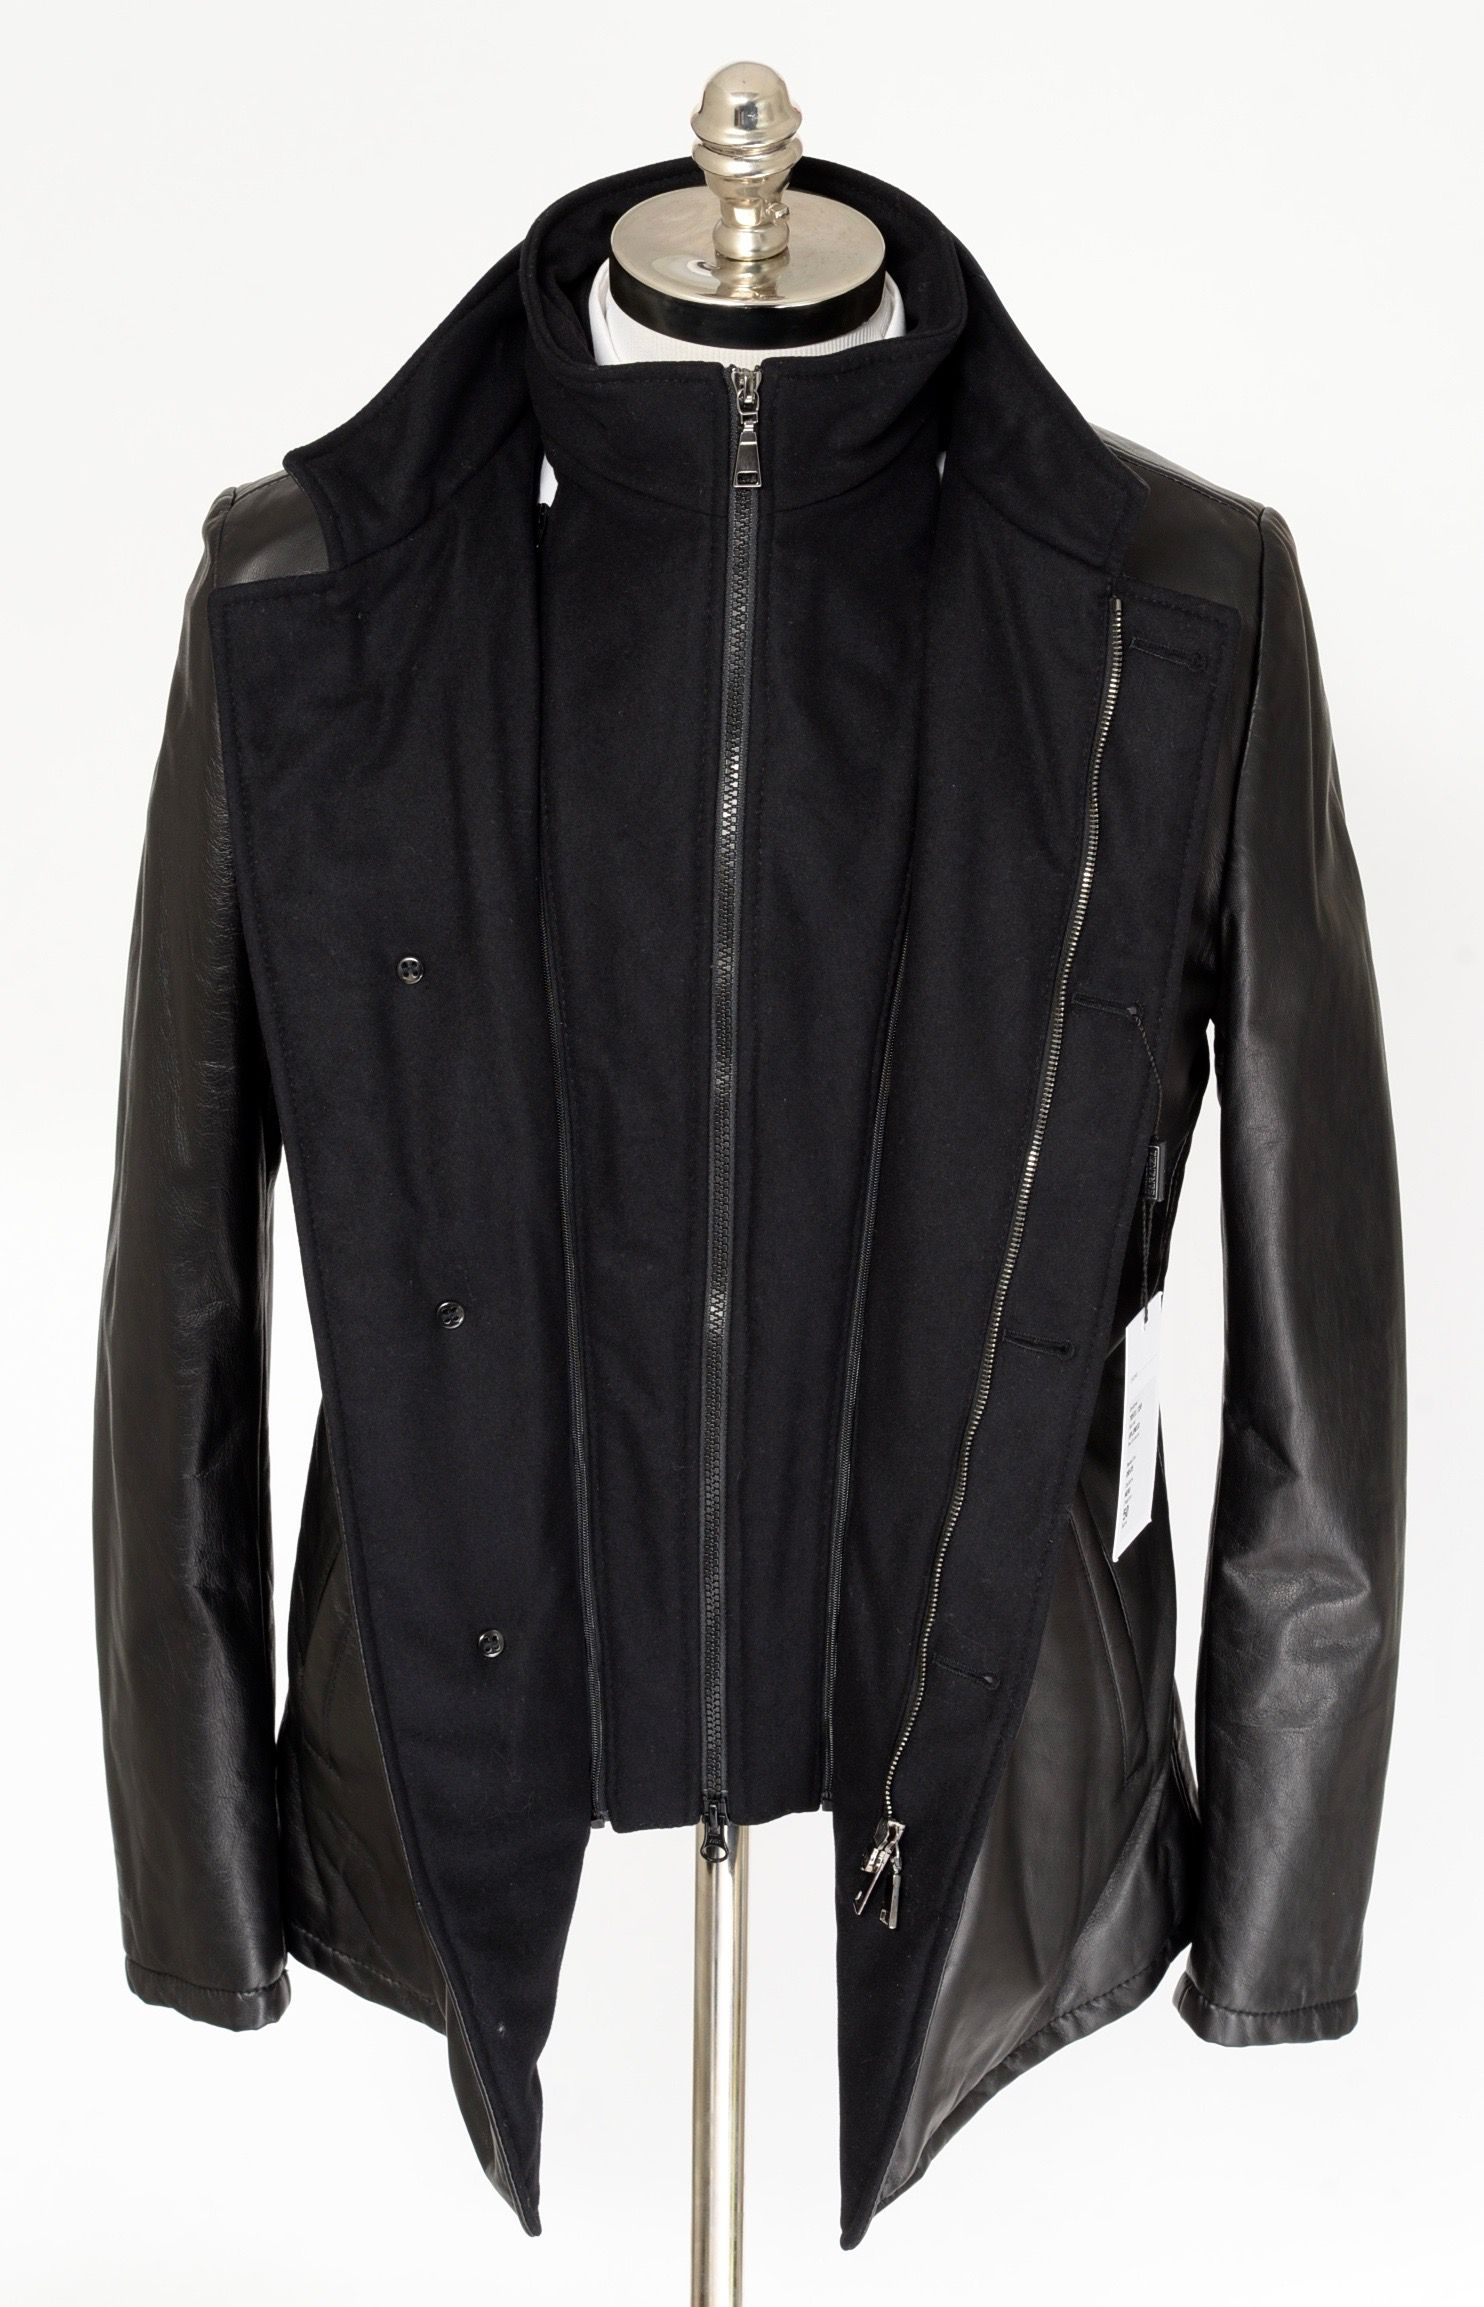 Mens Di Bello Italy Black Leather Cashmere Zip Car Coat 4btn Jacket Get In There Http Www Frieschskys Com Ou Menswear Mens Designer Fashion Coat Fashion [ 2307 x 1484 Pixel ]